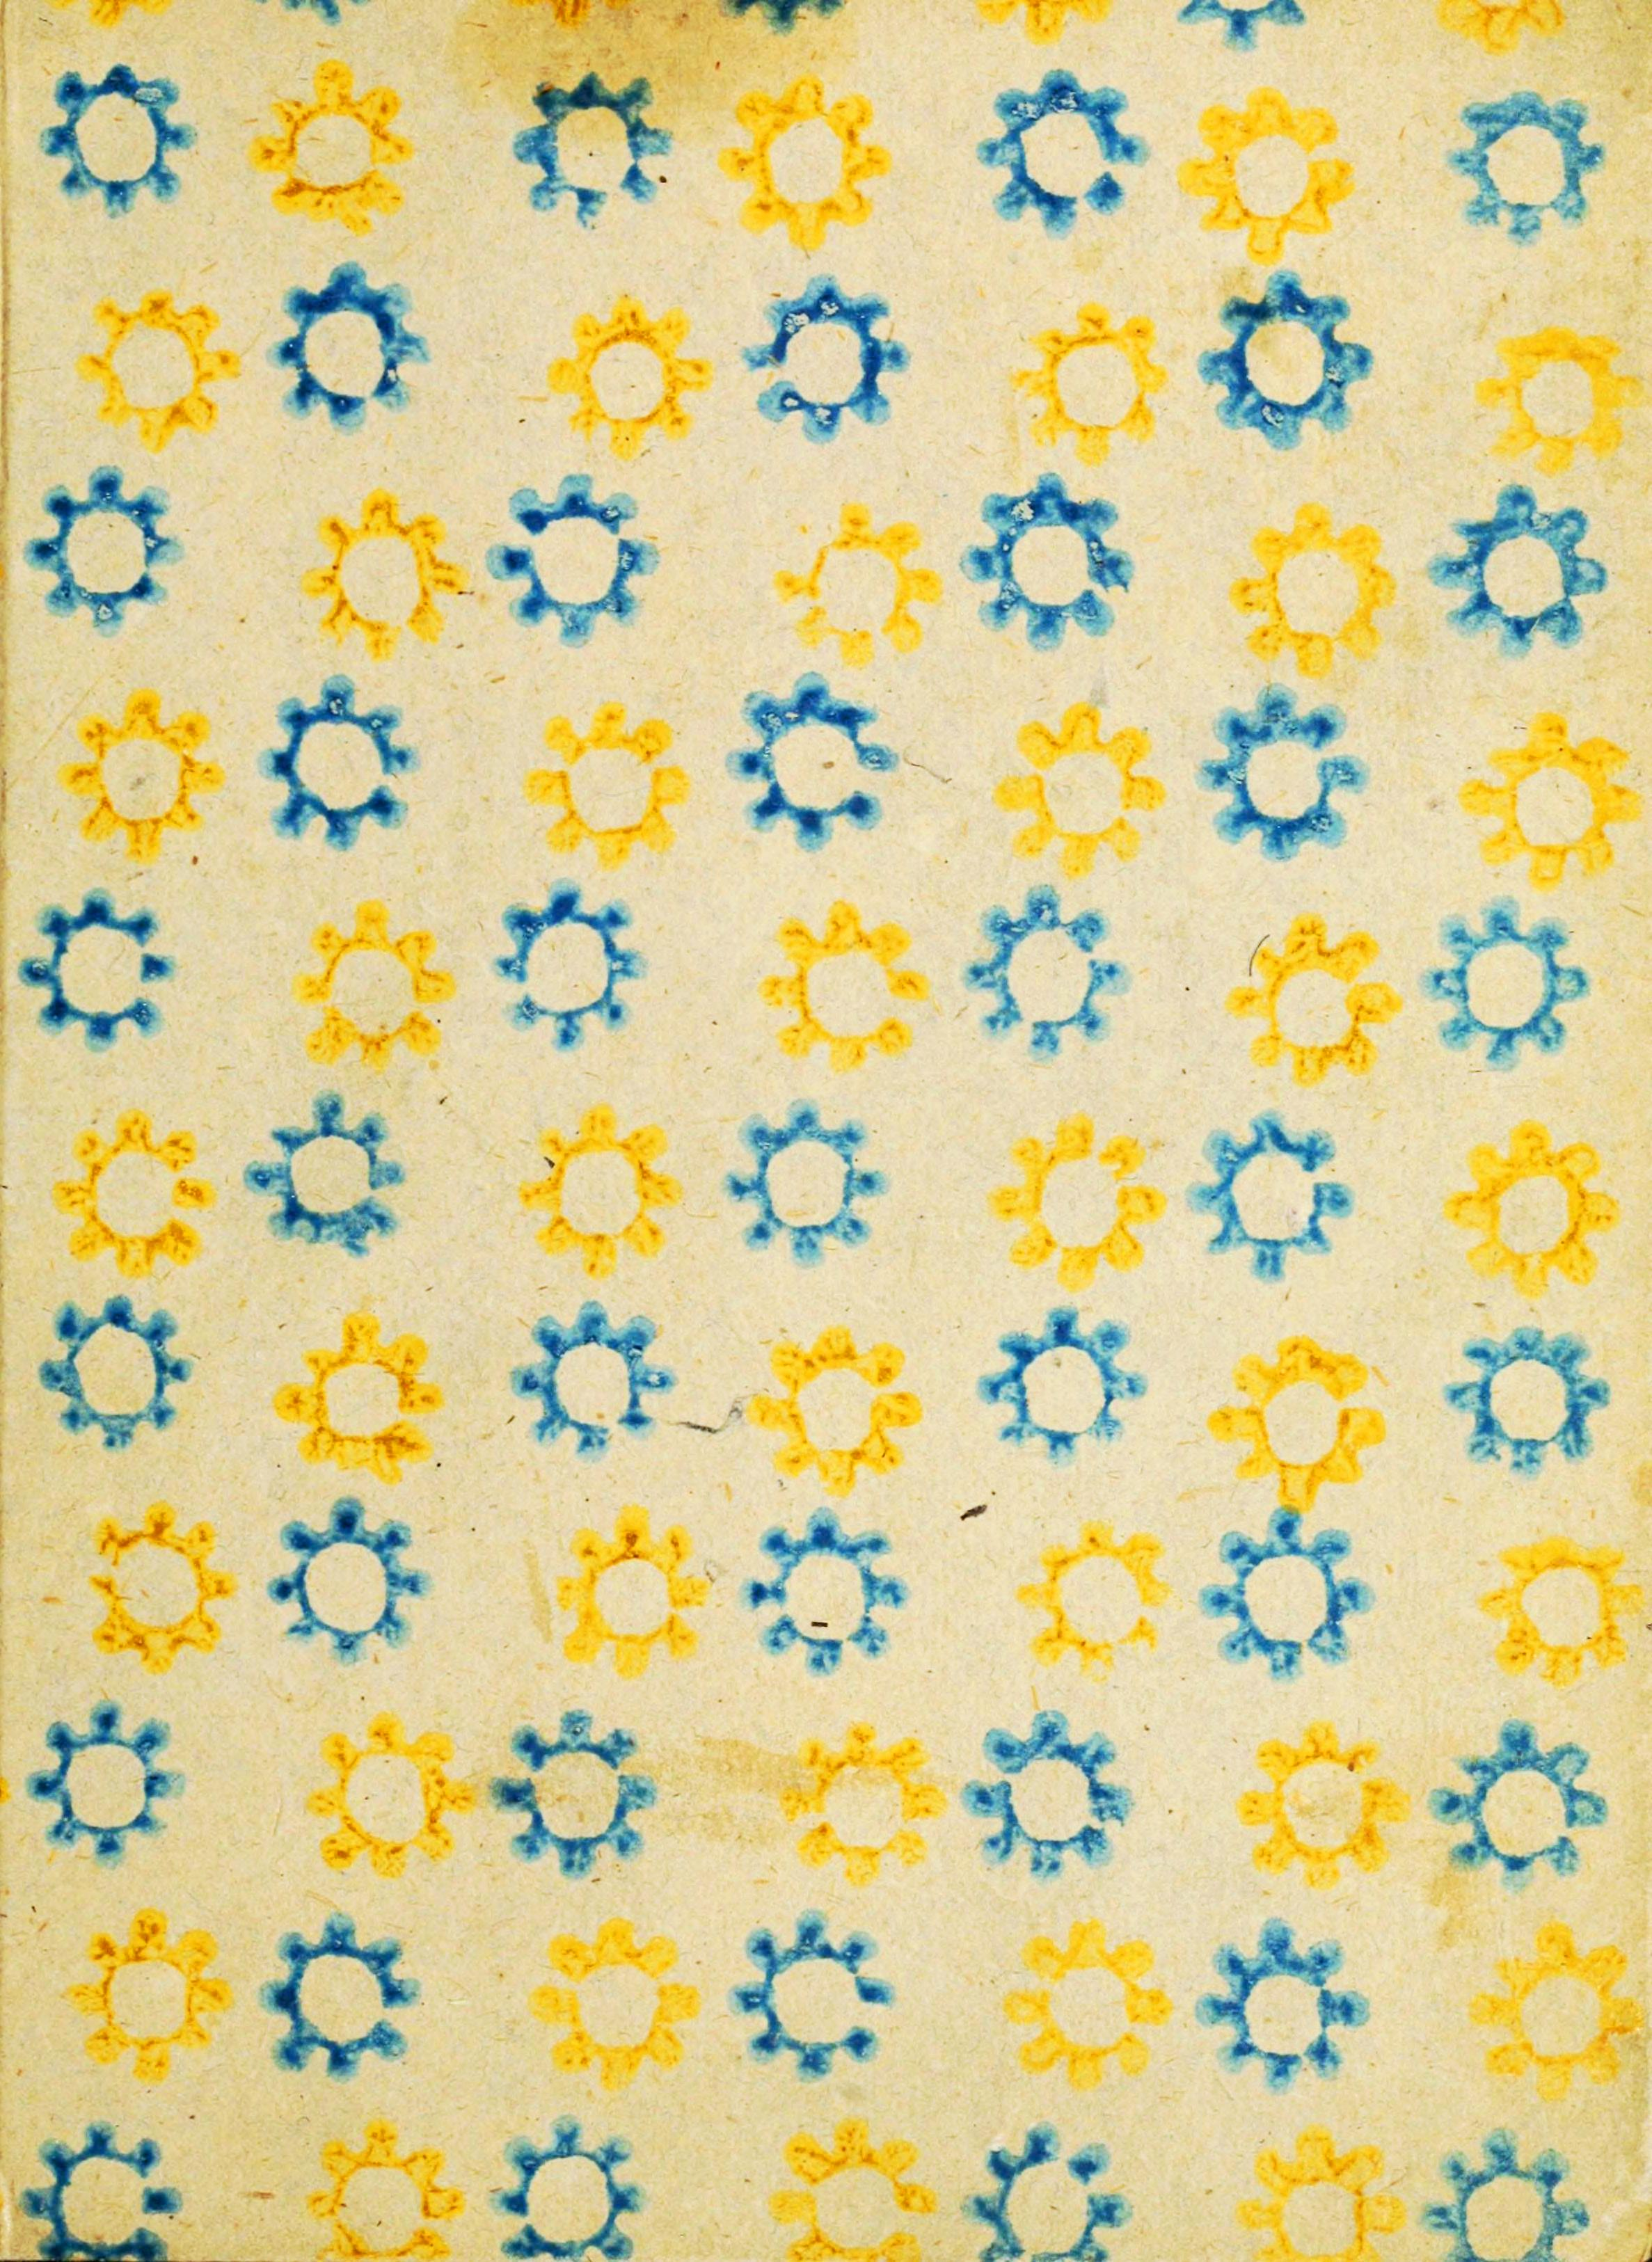 Design-Paper-Pattern-Blue-and-yellow-sun-stencil